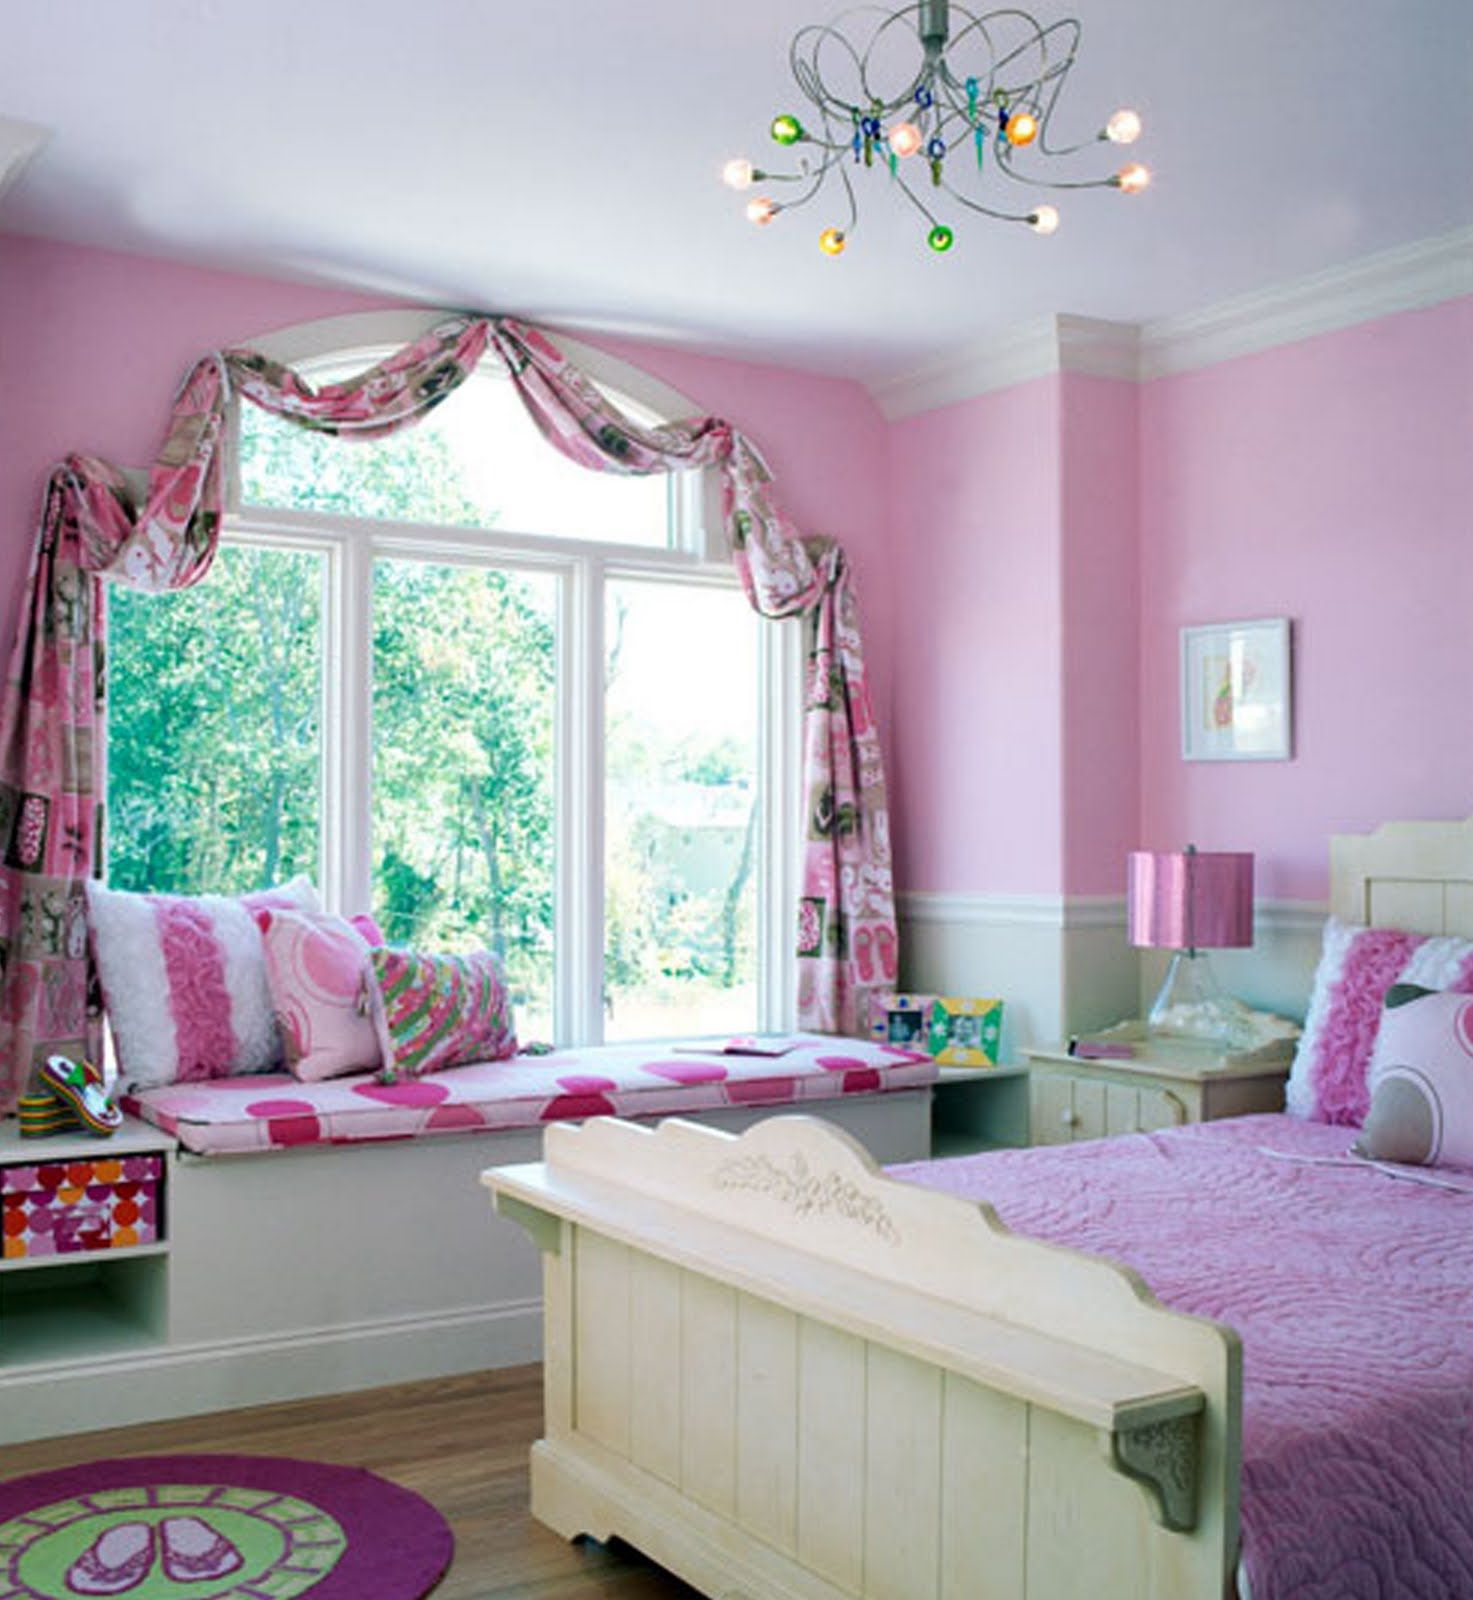 Bedroom design for girls purple - Excellent Girls Room Design Ideas With Creative Purple Floral